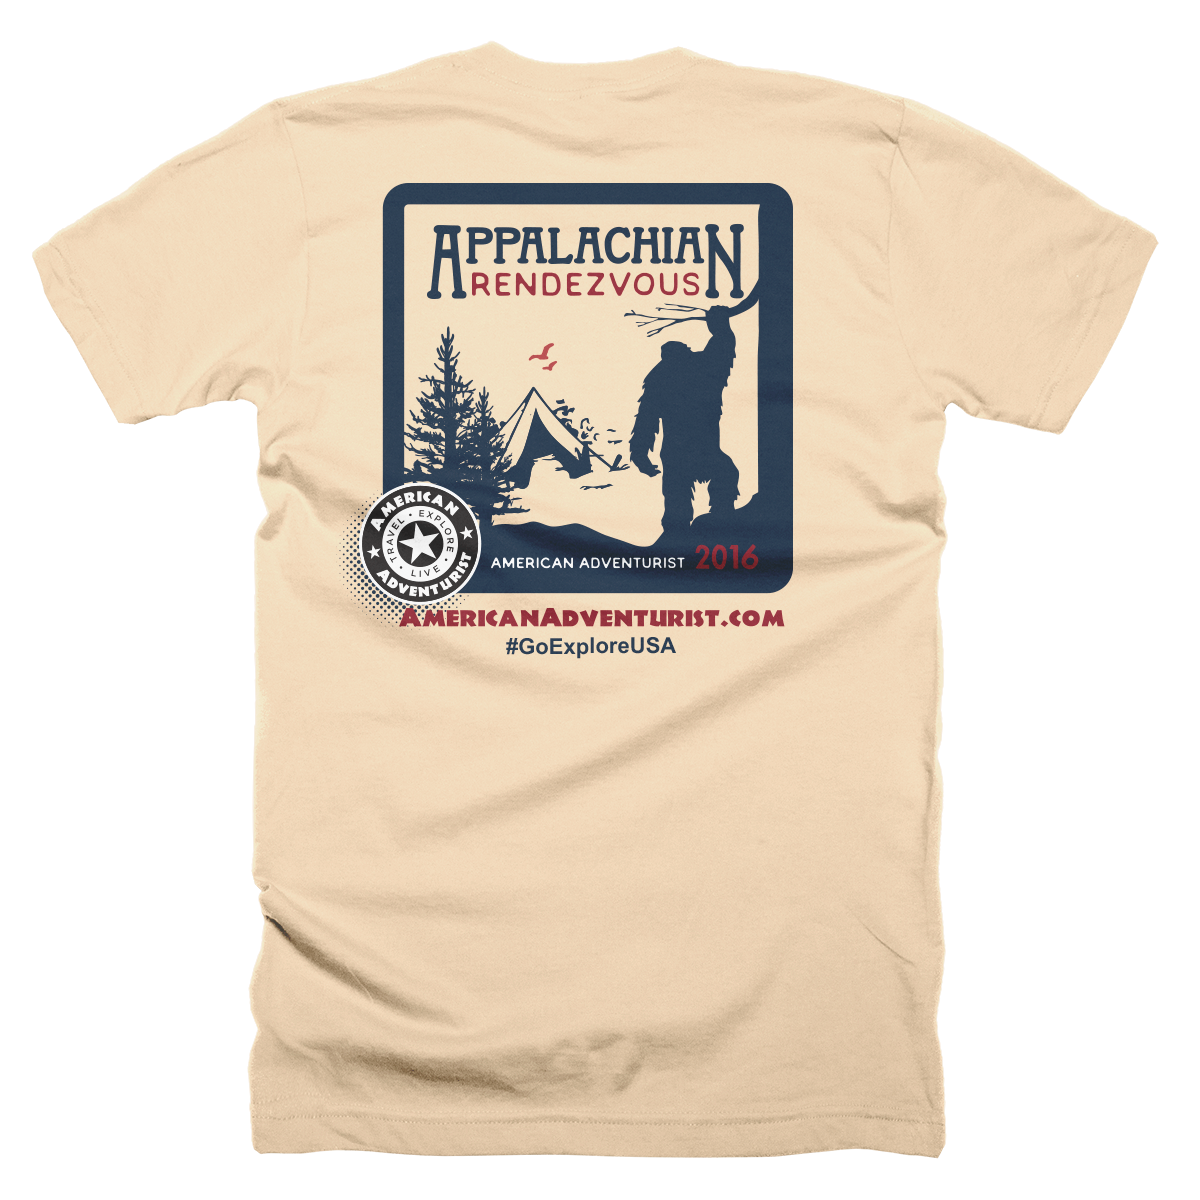 Image of Appalachian Rendezvous 2016 T-Shirt